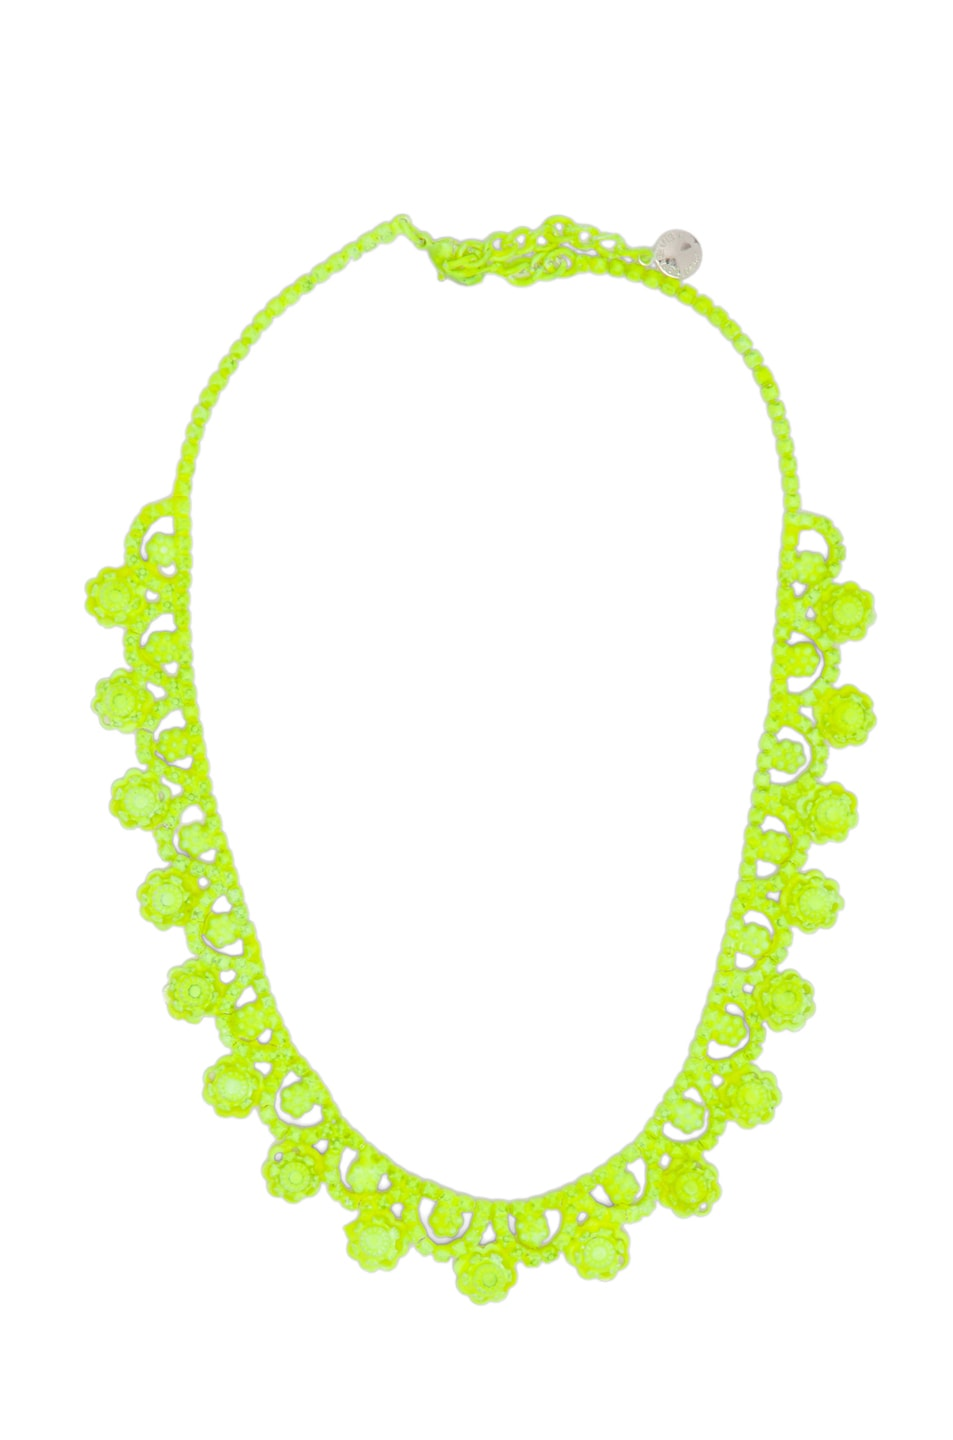 Image 1 of Tom Binns Neo Neon Hand Painted Rhodium Necklace in Yellow Neon